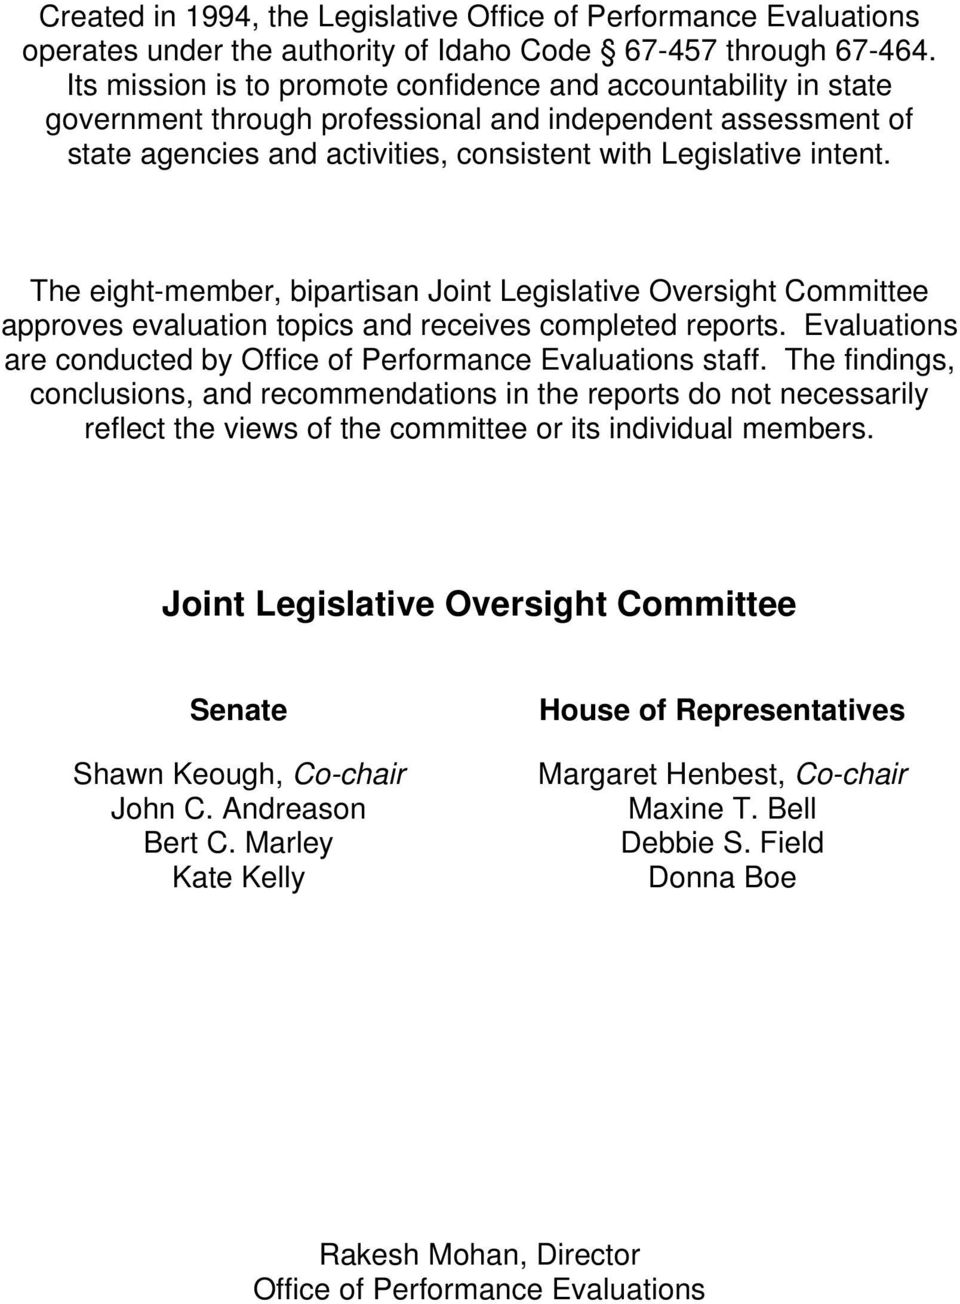 The eight-member, bipartisan Joint Legislative Oversight Committee approves evaluation topics and receives completed reports. Evaluations are conducted by Office of Performance Evaluations staff.